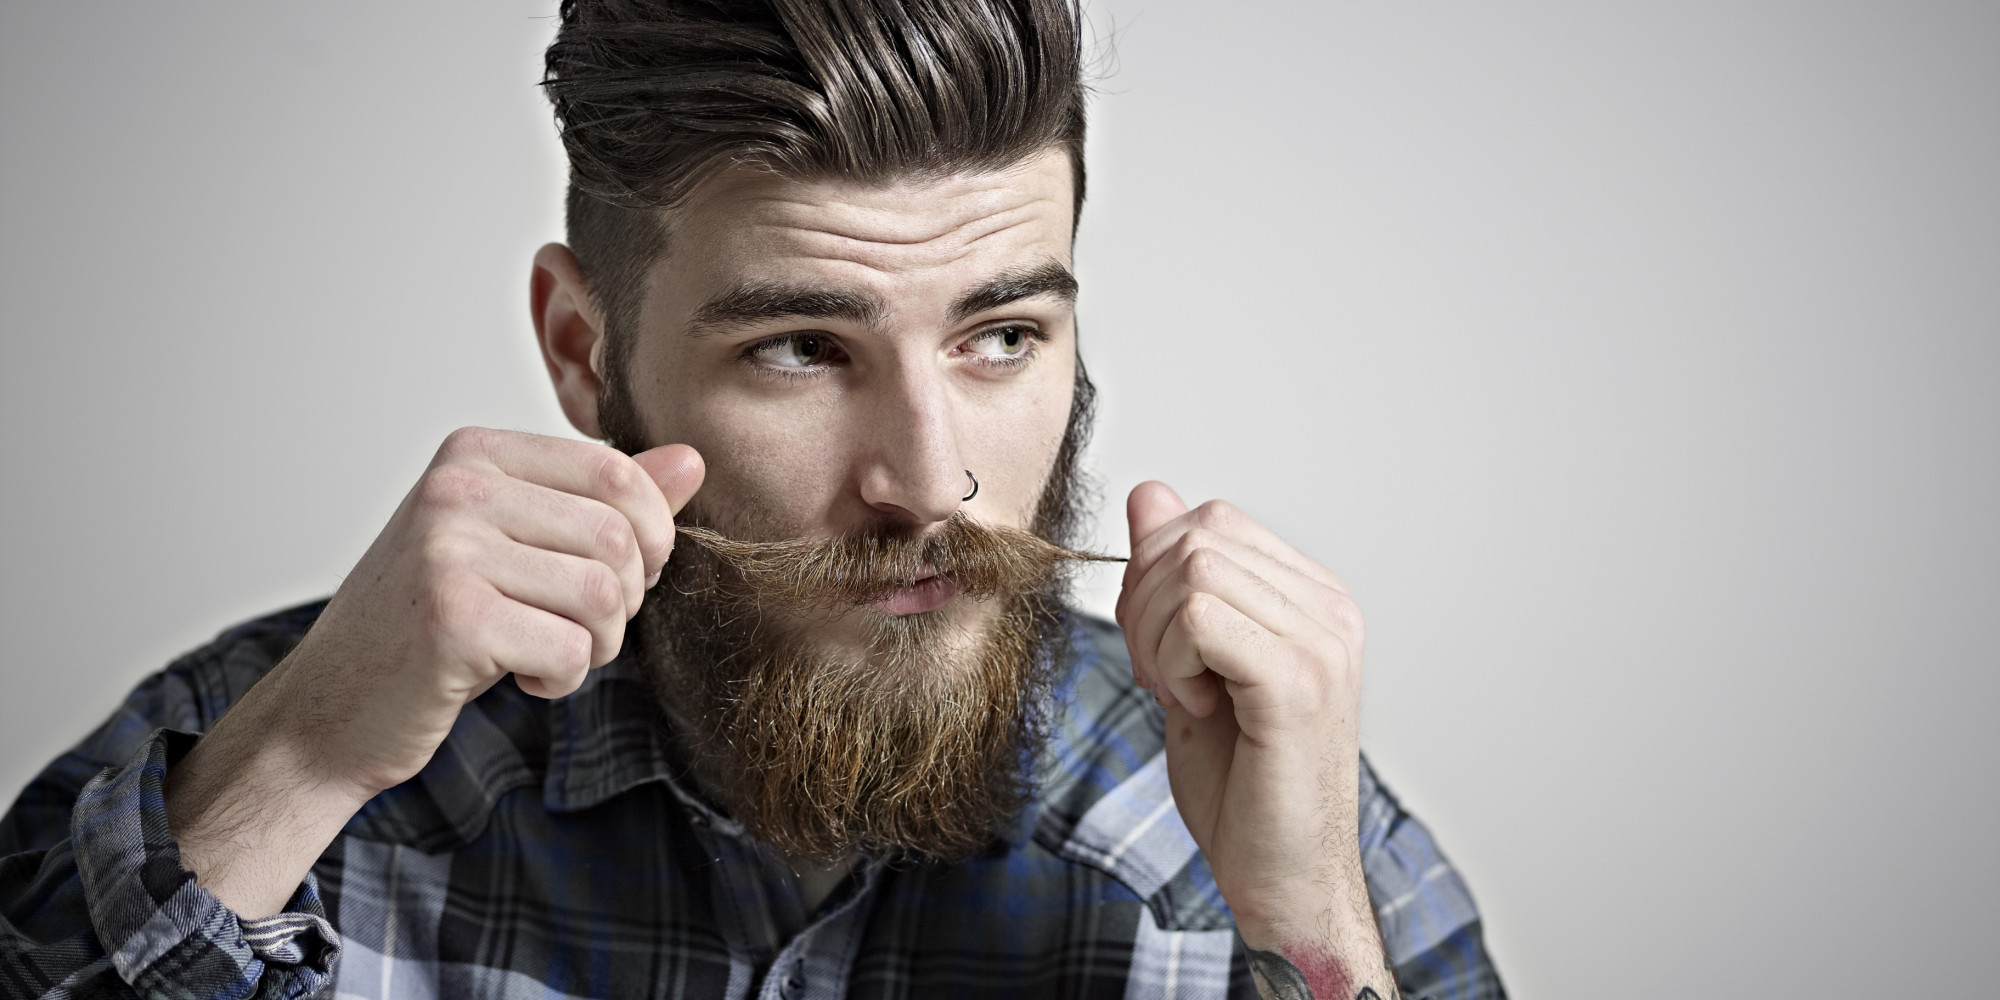 30 Best Bearded Styles And Facial Hair Looks For Men